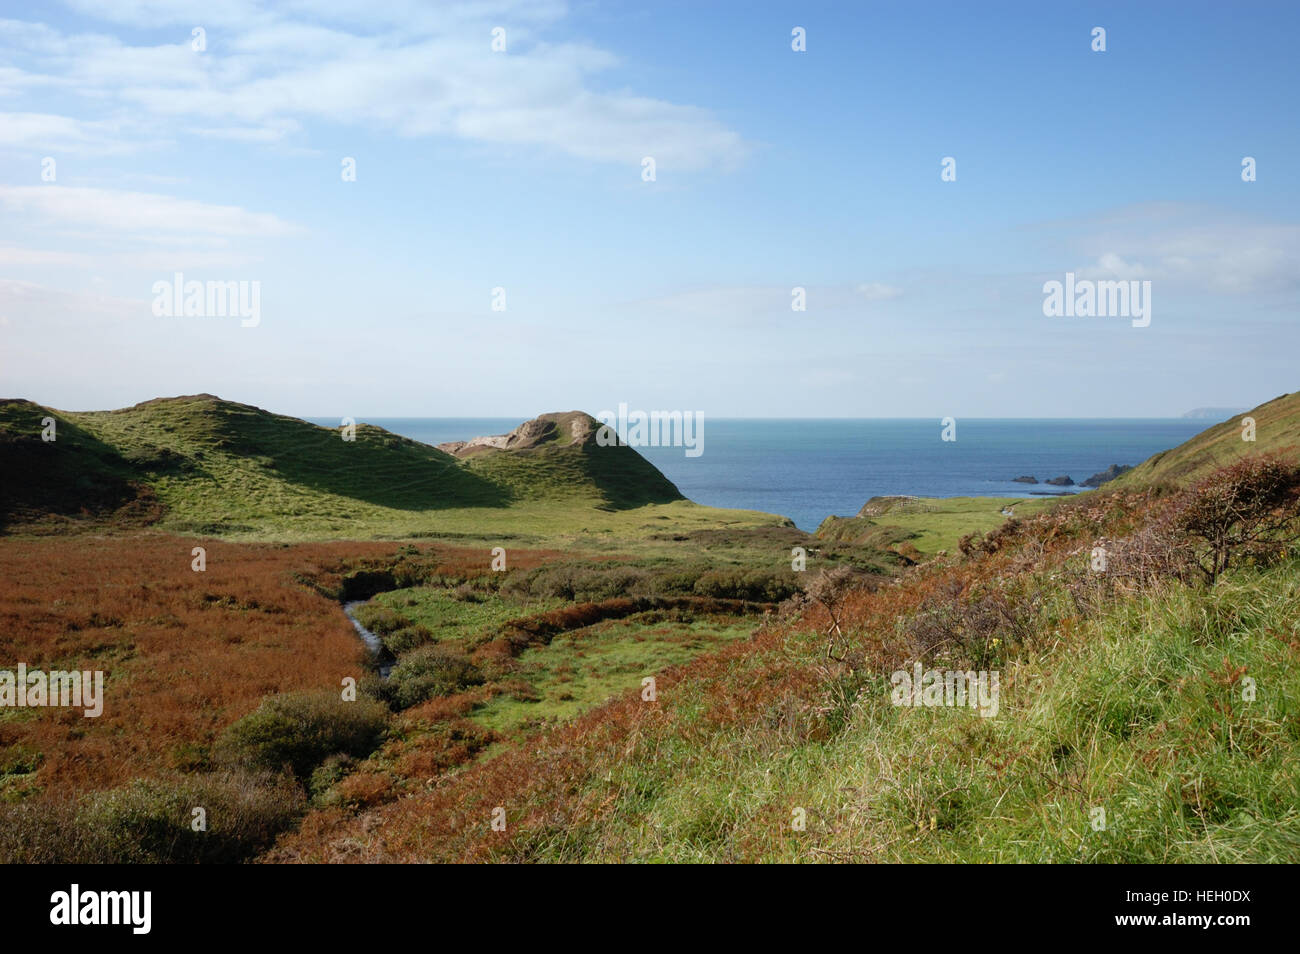 Speke's Mill valley looking towards Brownspear Point and Speke's Mill Mouth on the South West Coast Path in North Stock Photo